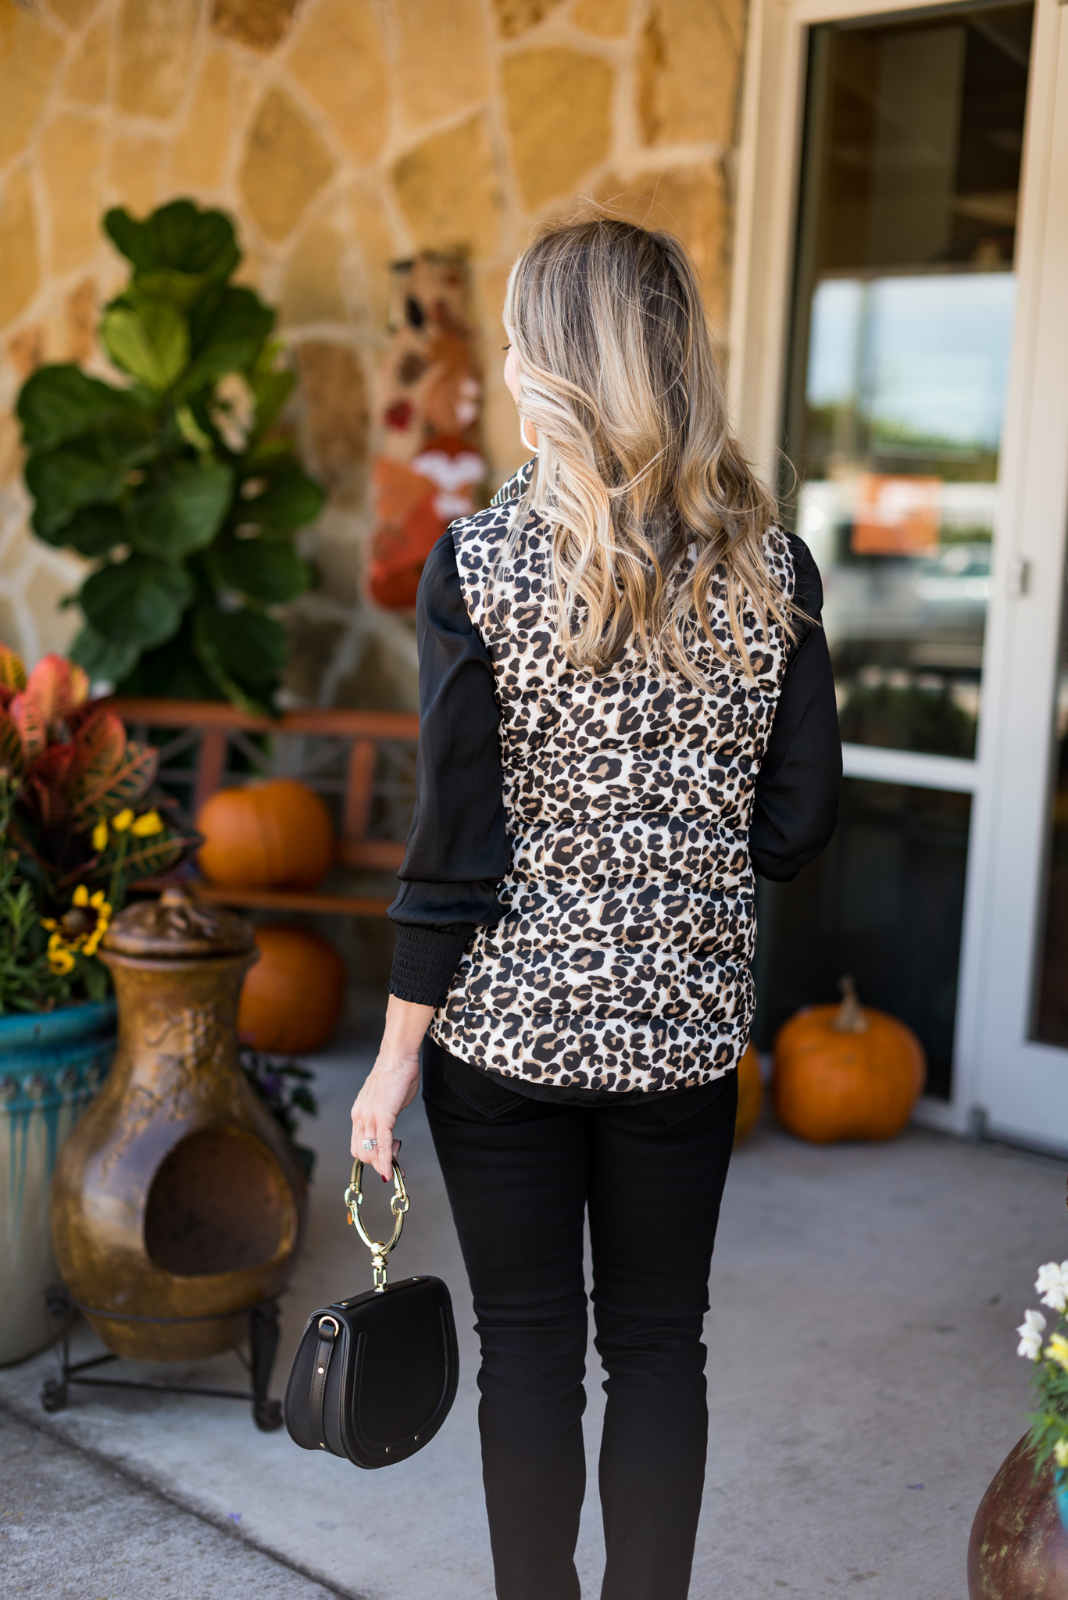 Cute Fall Outfit w Leopard Vest.4